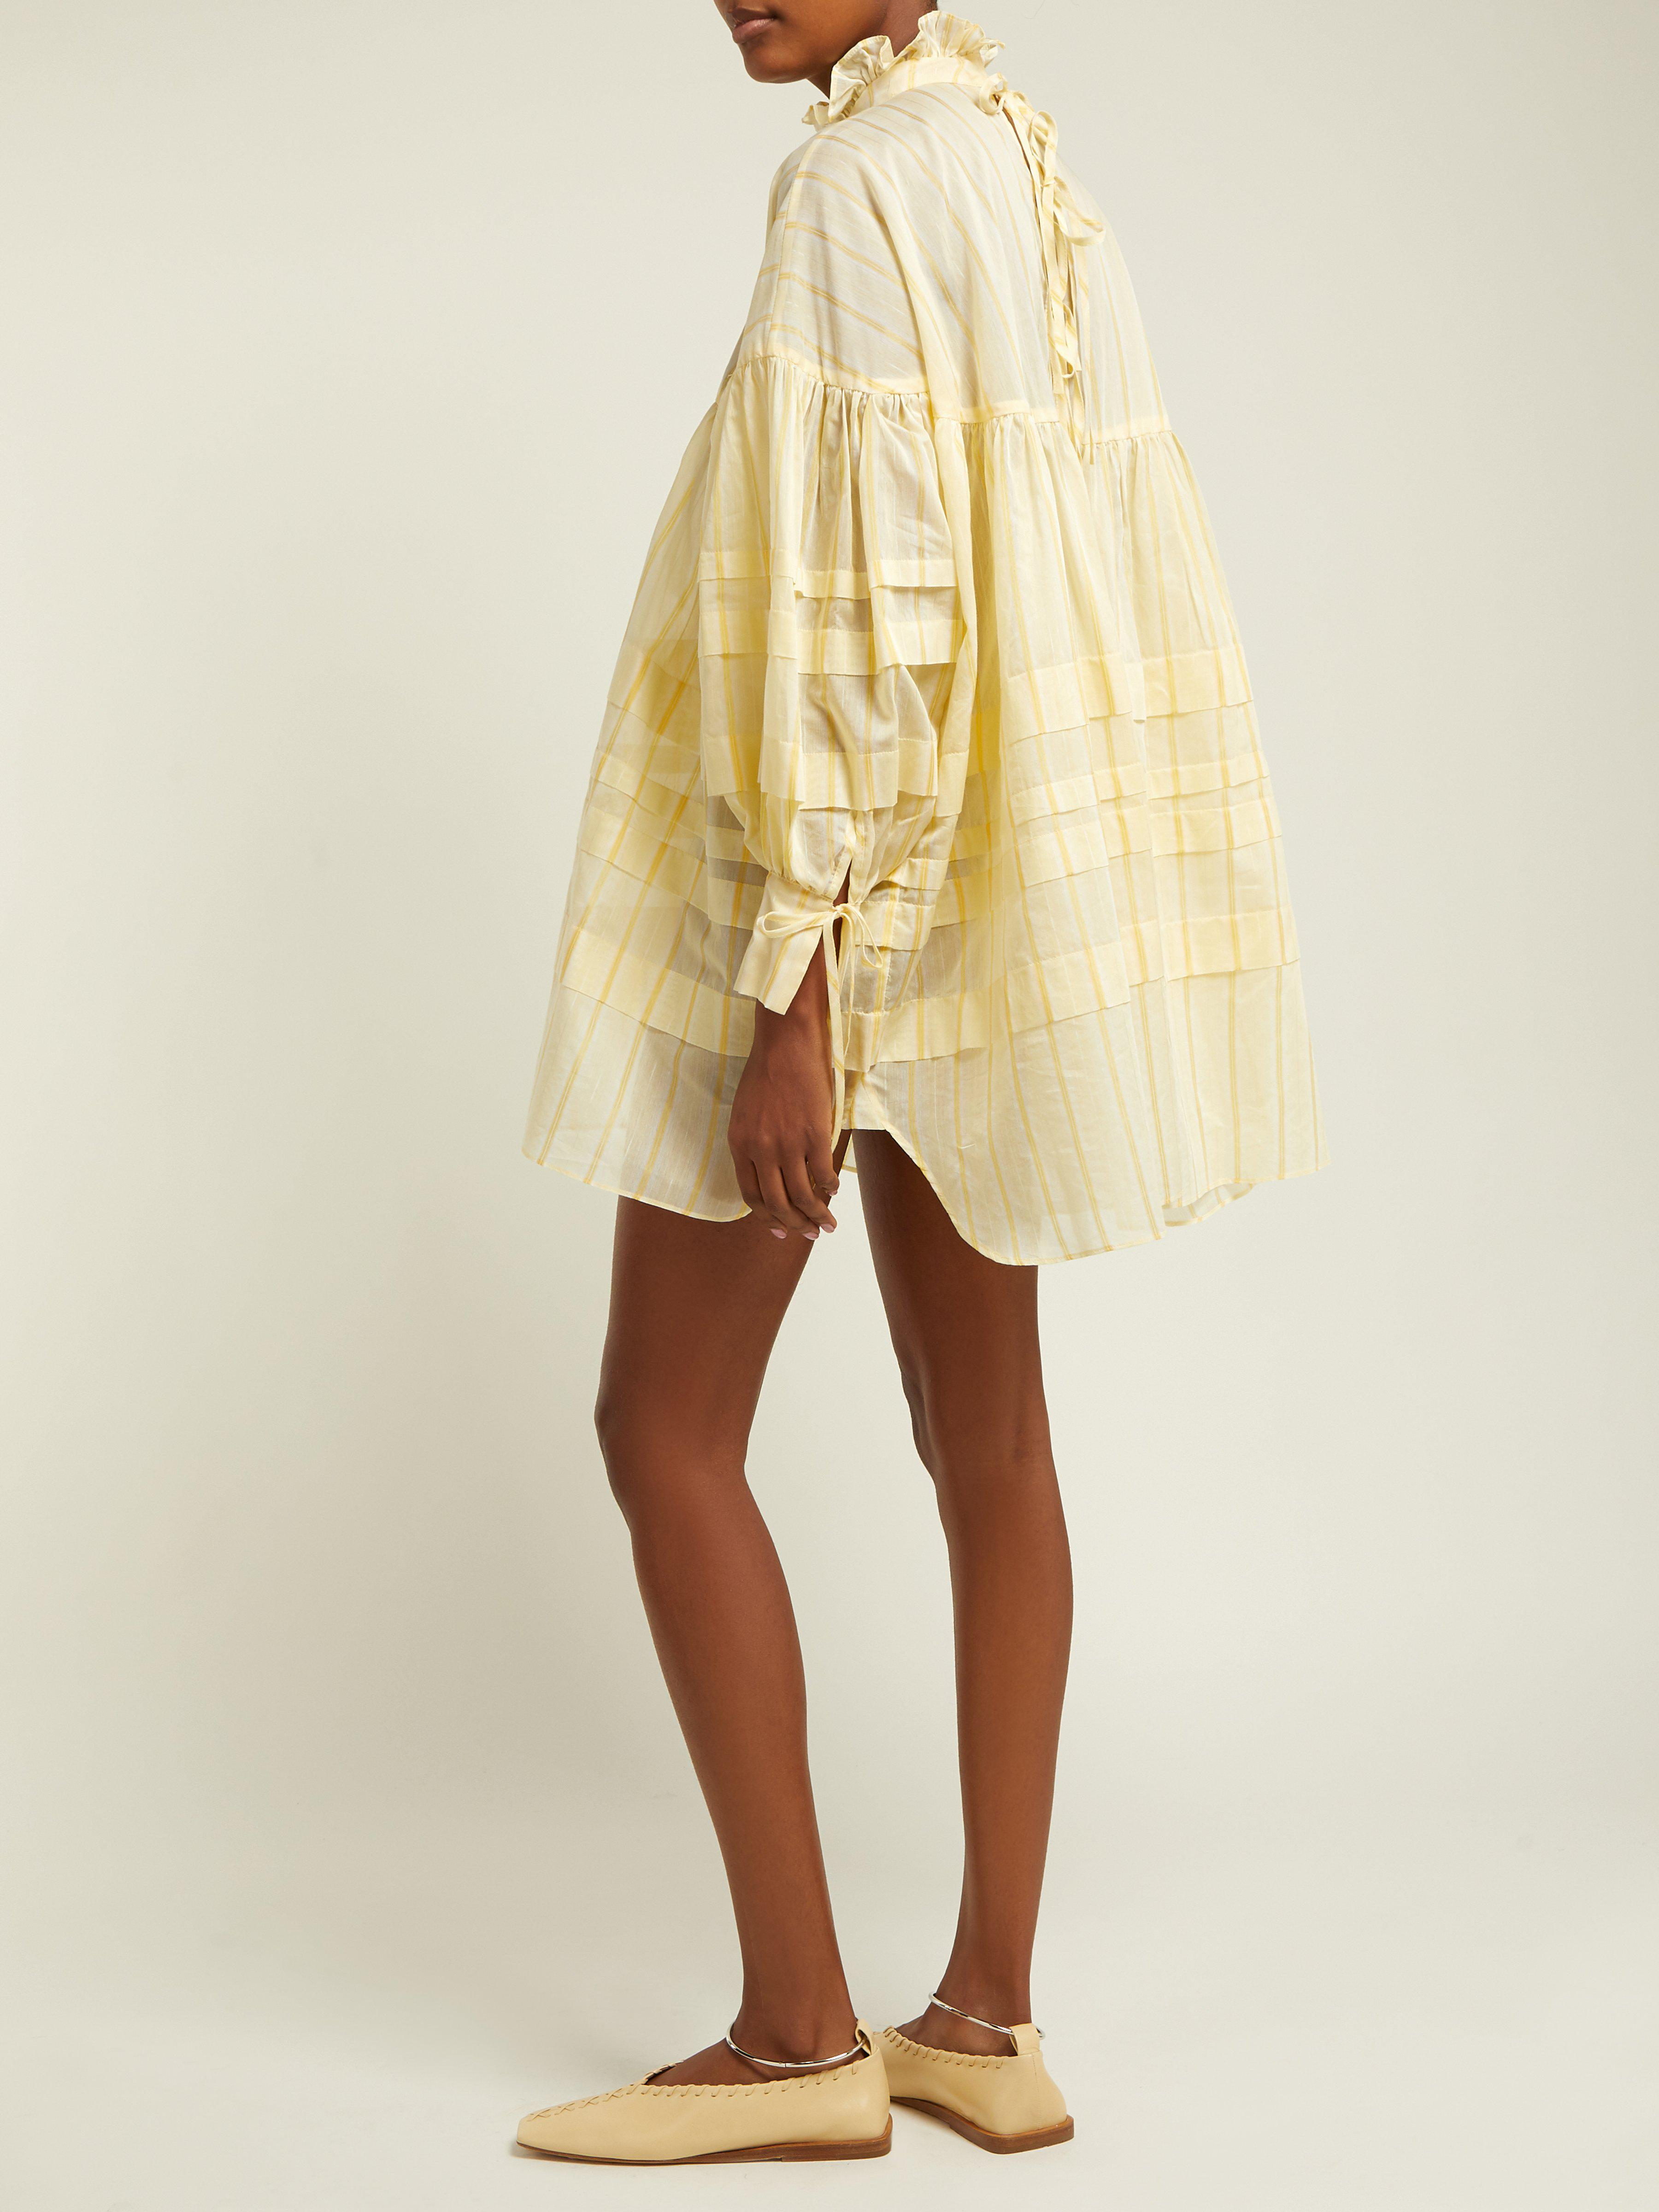 Lyst Dress Cotton Cecile Bahnsen Blend In Yellow Alberte eD2IEH9WY